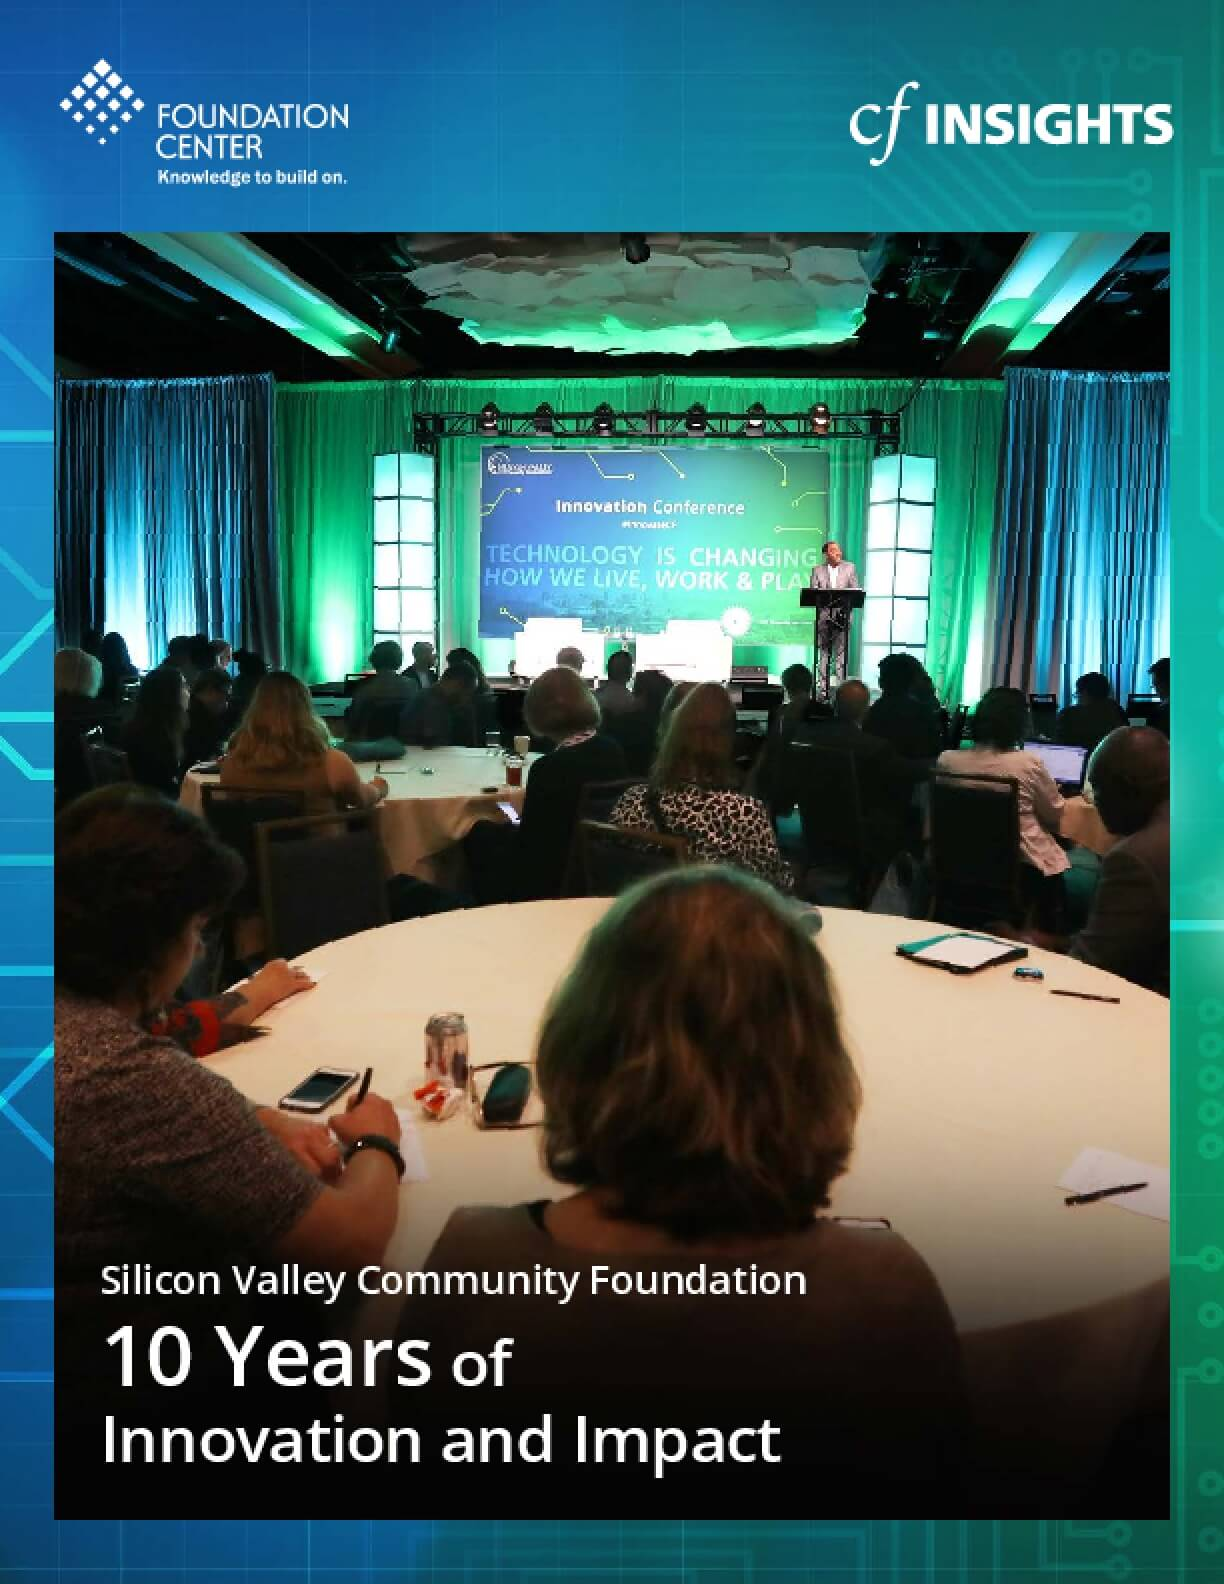 Silicon Valley Community Foundation: 10 Years of Innovation and Impact